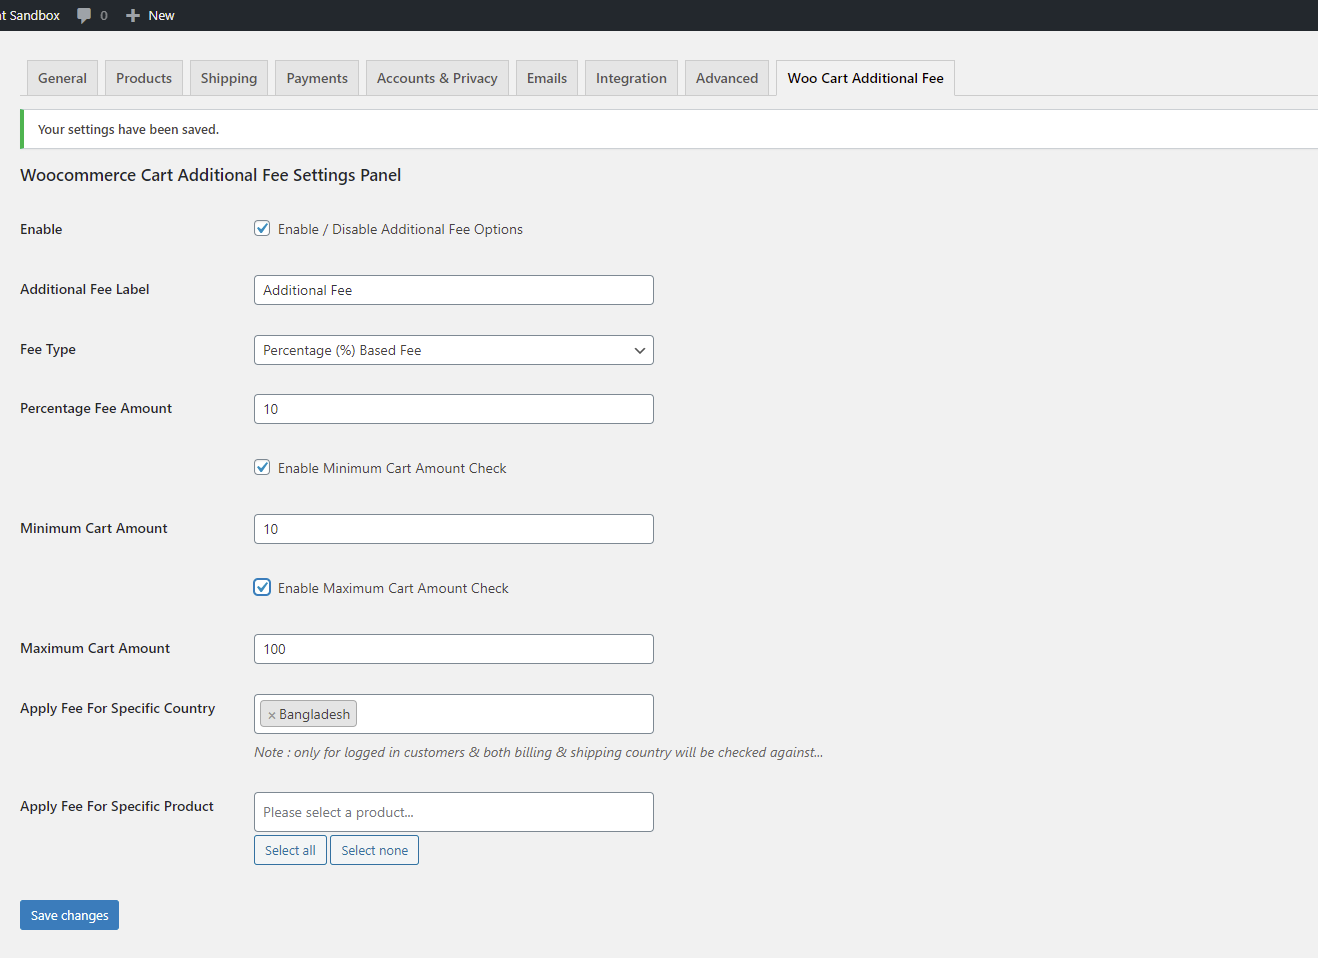 Settings panel for Woocommerce Cart Additional Fee Plugin.